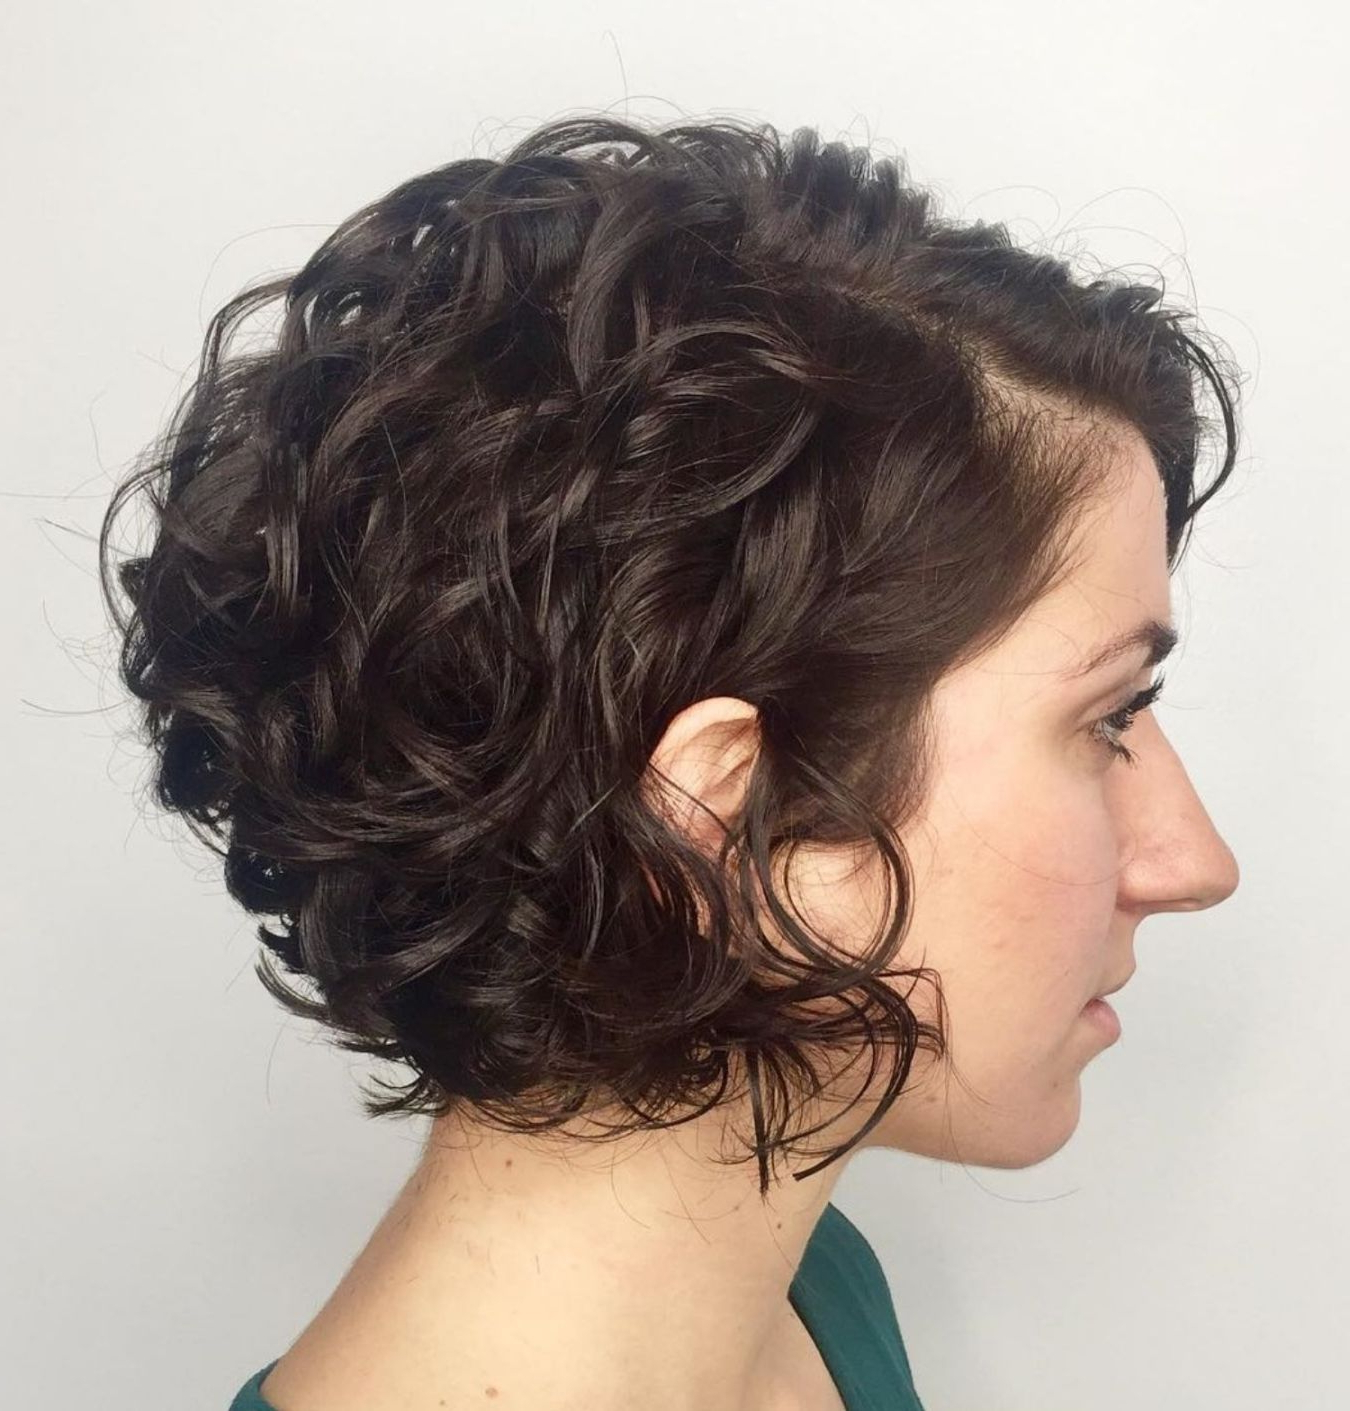 65 Different Versions Of Curly Bob Hairstyle In 2019 | Short With Regard To Simple Side Parted Jaw Length Bob Hairstyles (View 12 of 20)